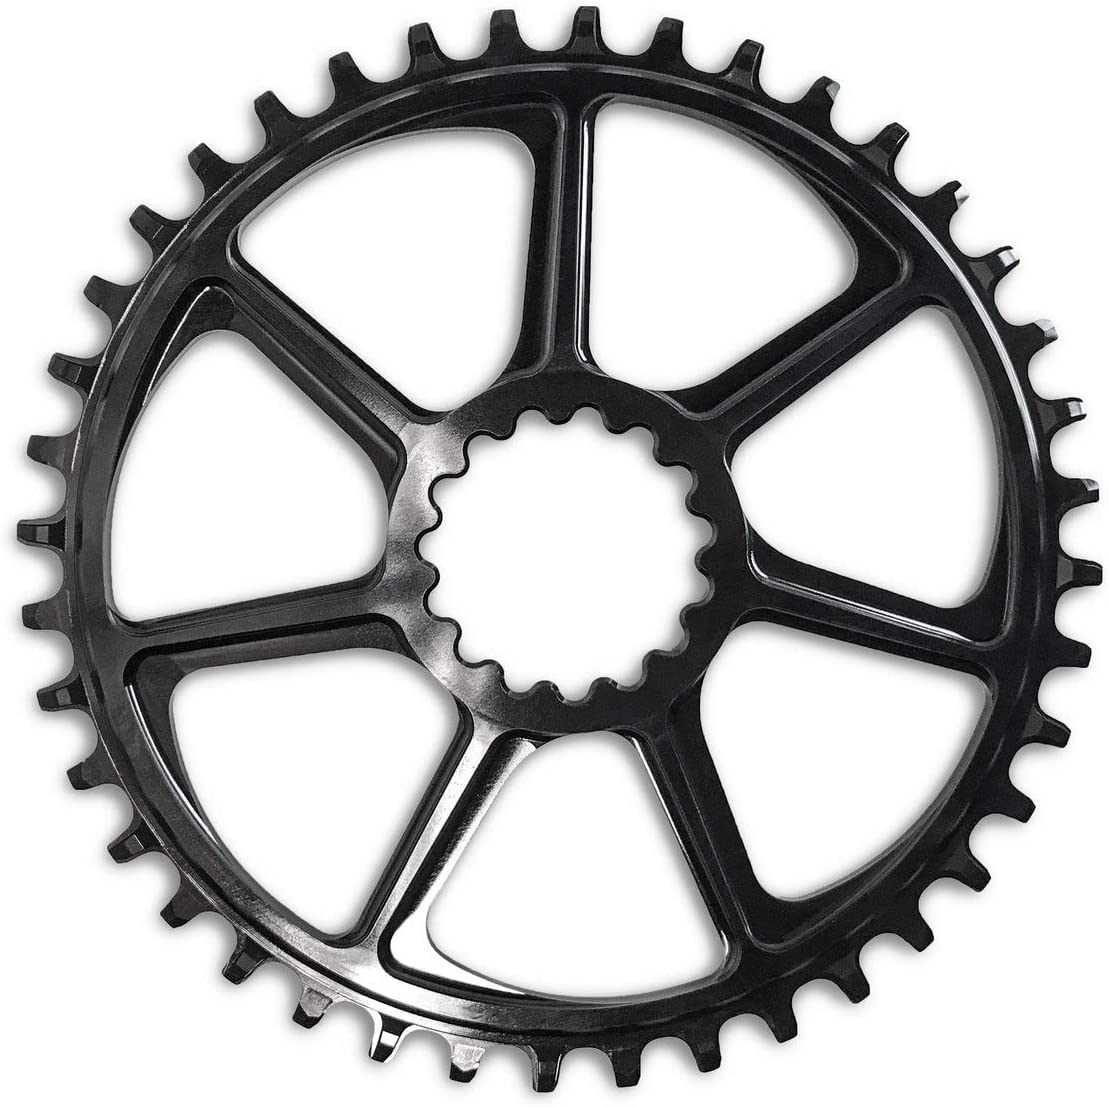 ethirteen service Components XCX Ultralight 32t Black Ranking TOP17 Guidering